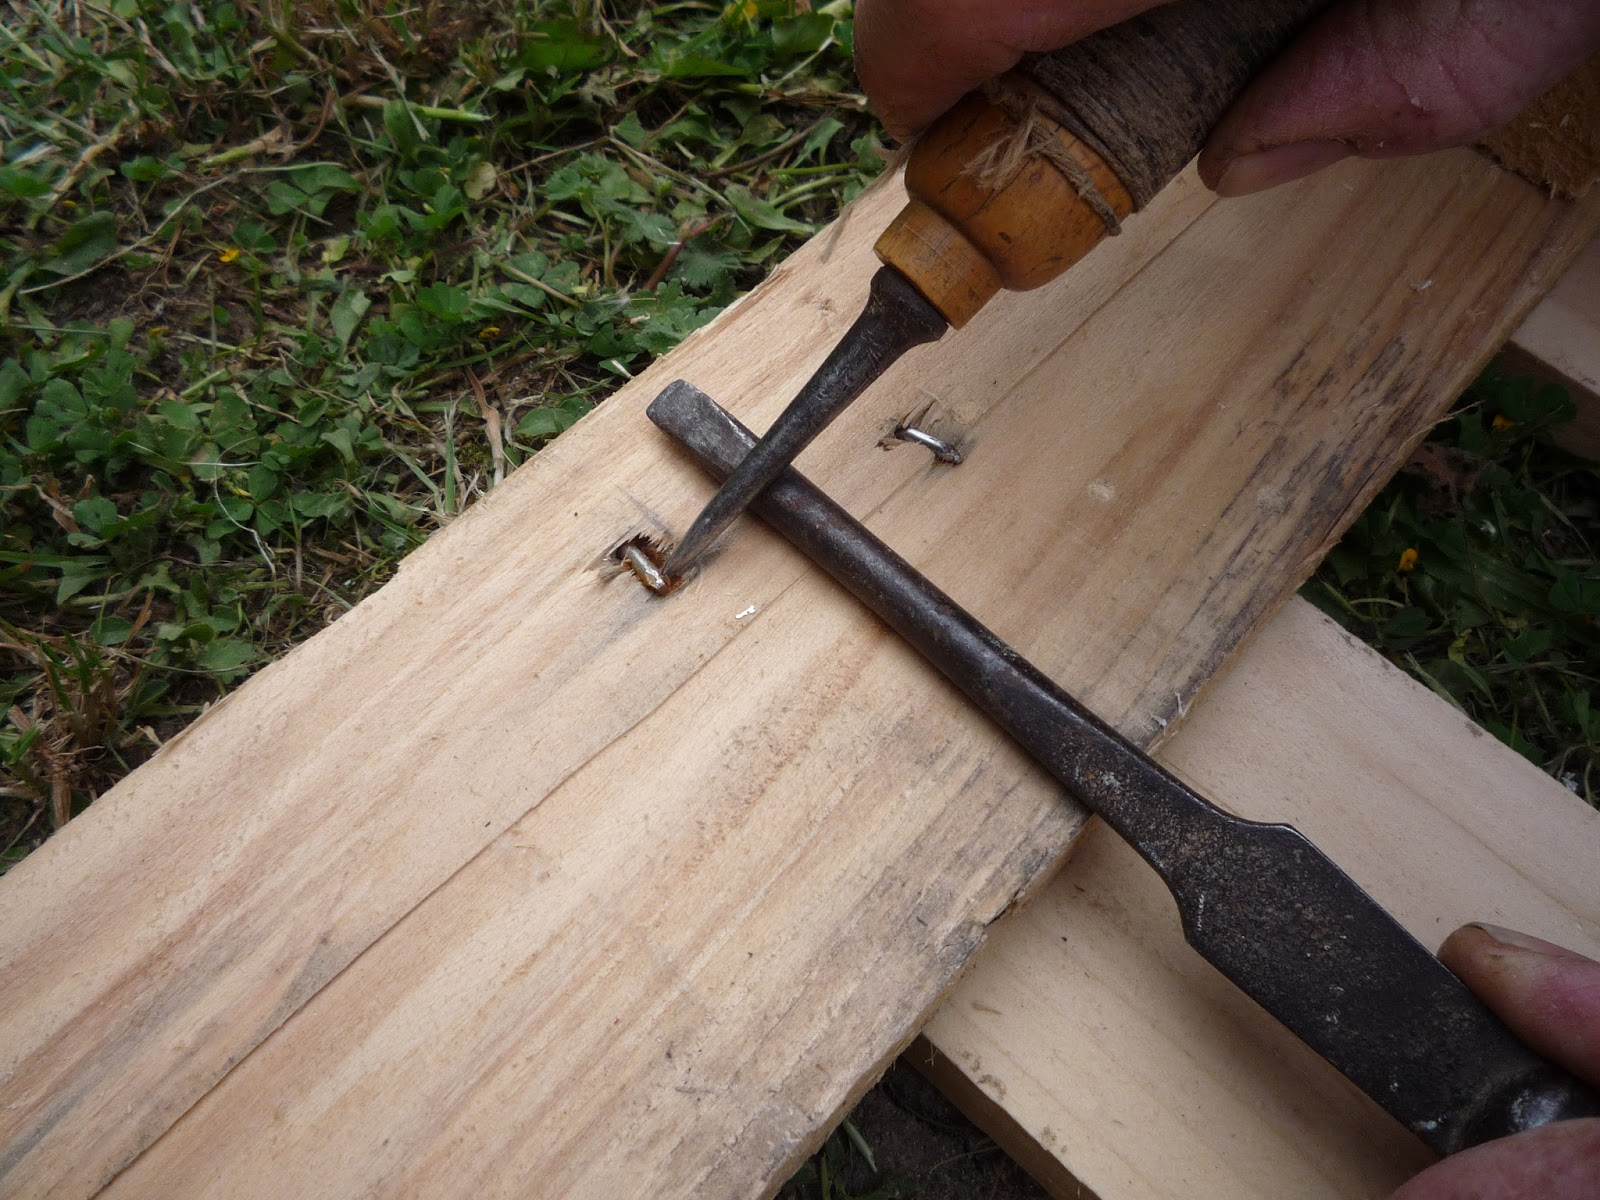 lifting nail point to take a pallet apart